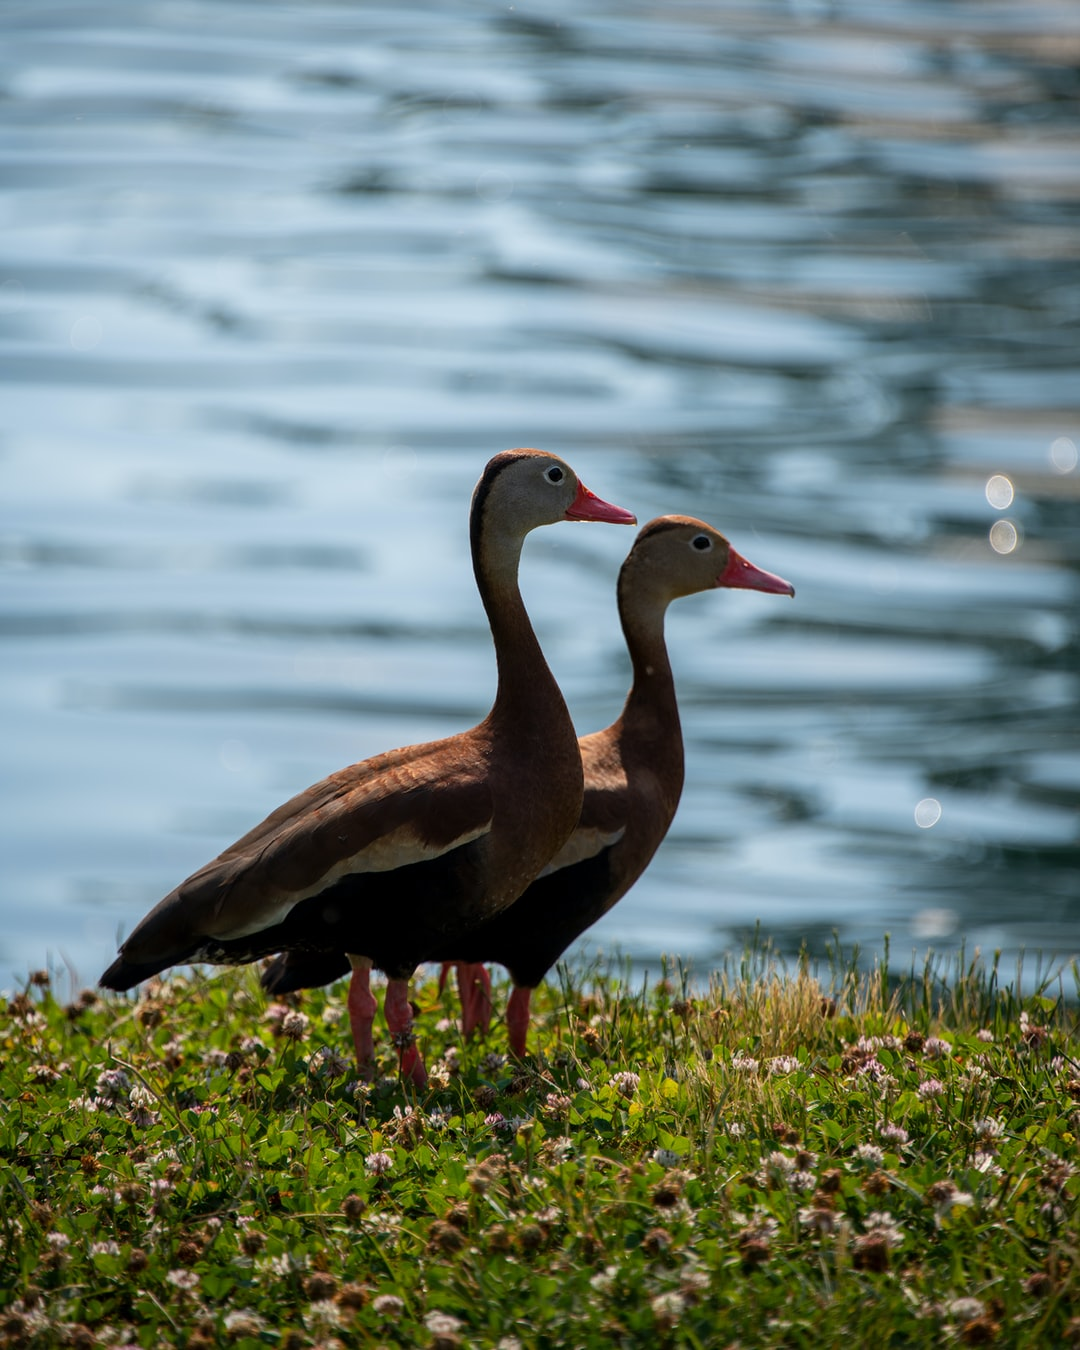 Black-bellied Whistling Ducks side by side at lake.